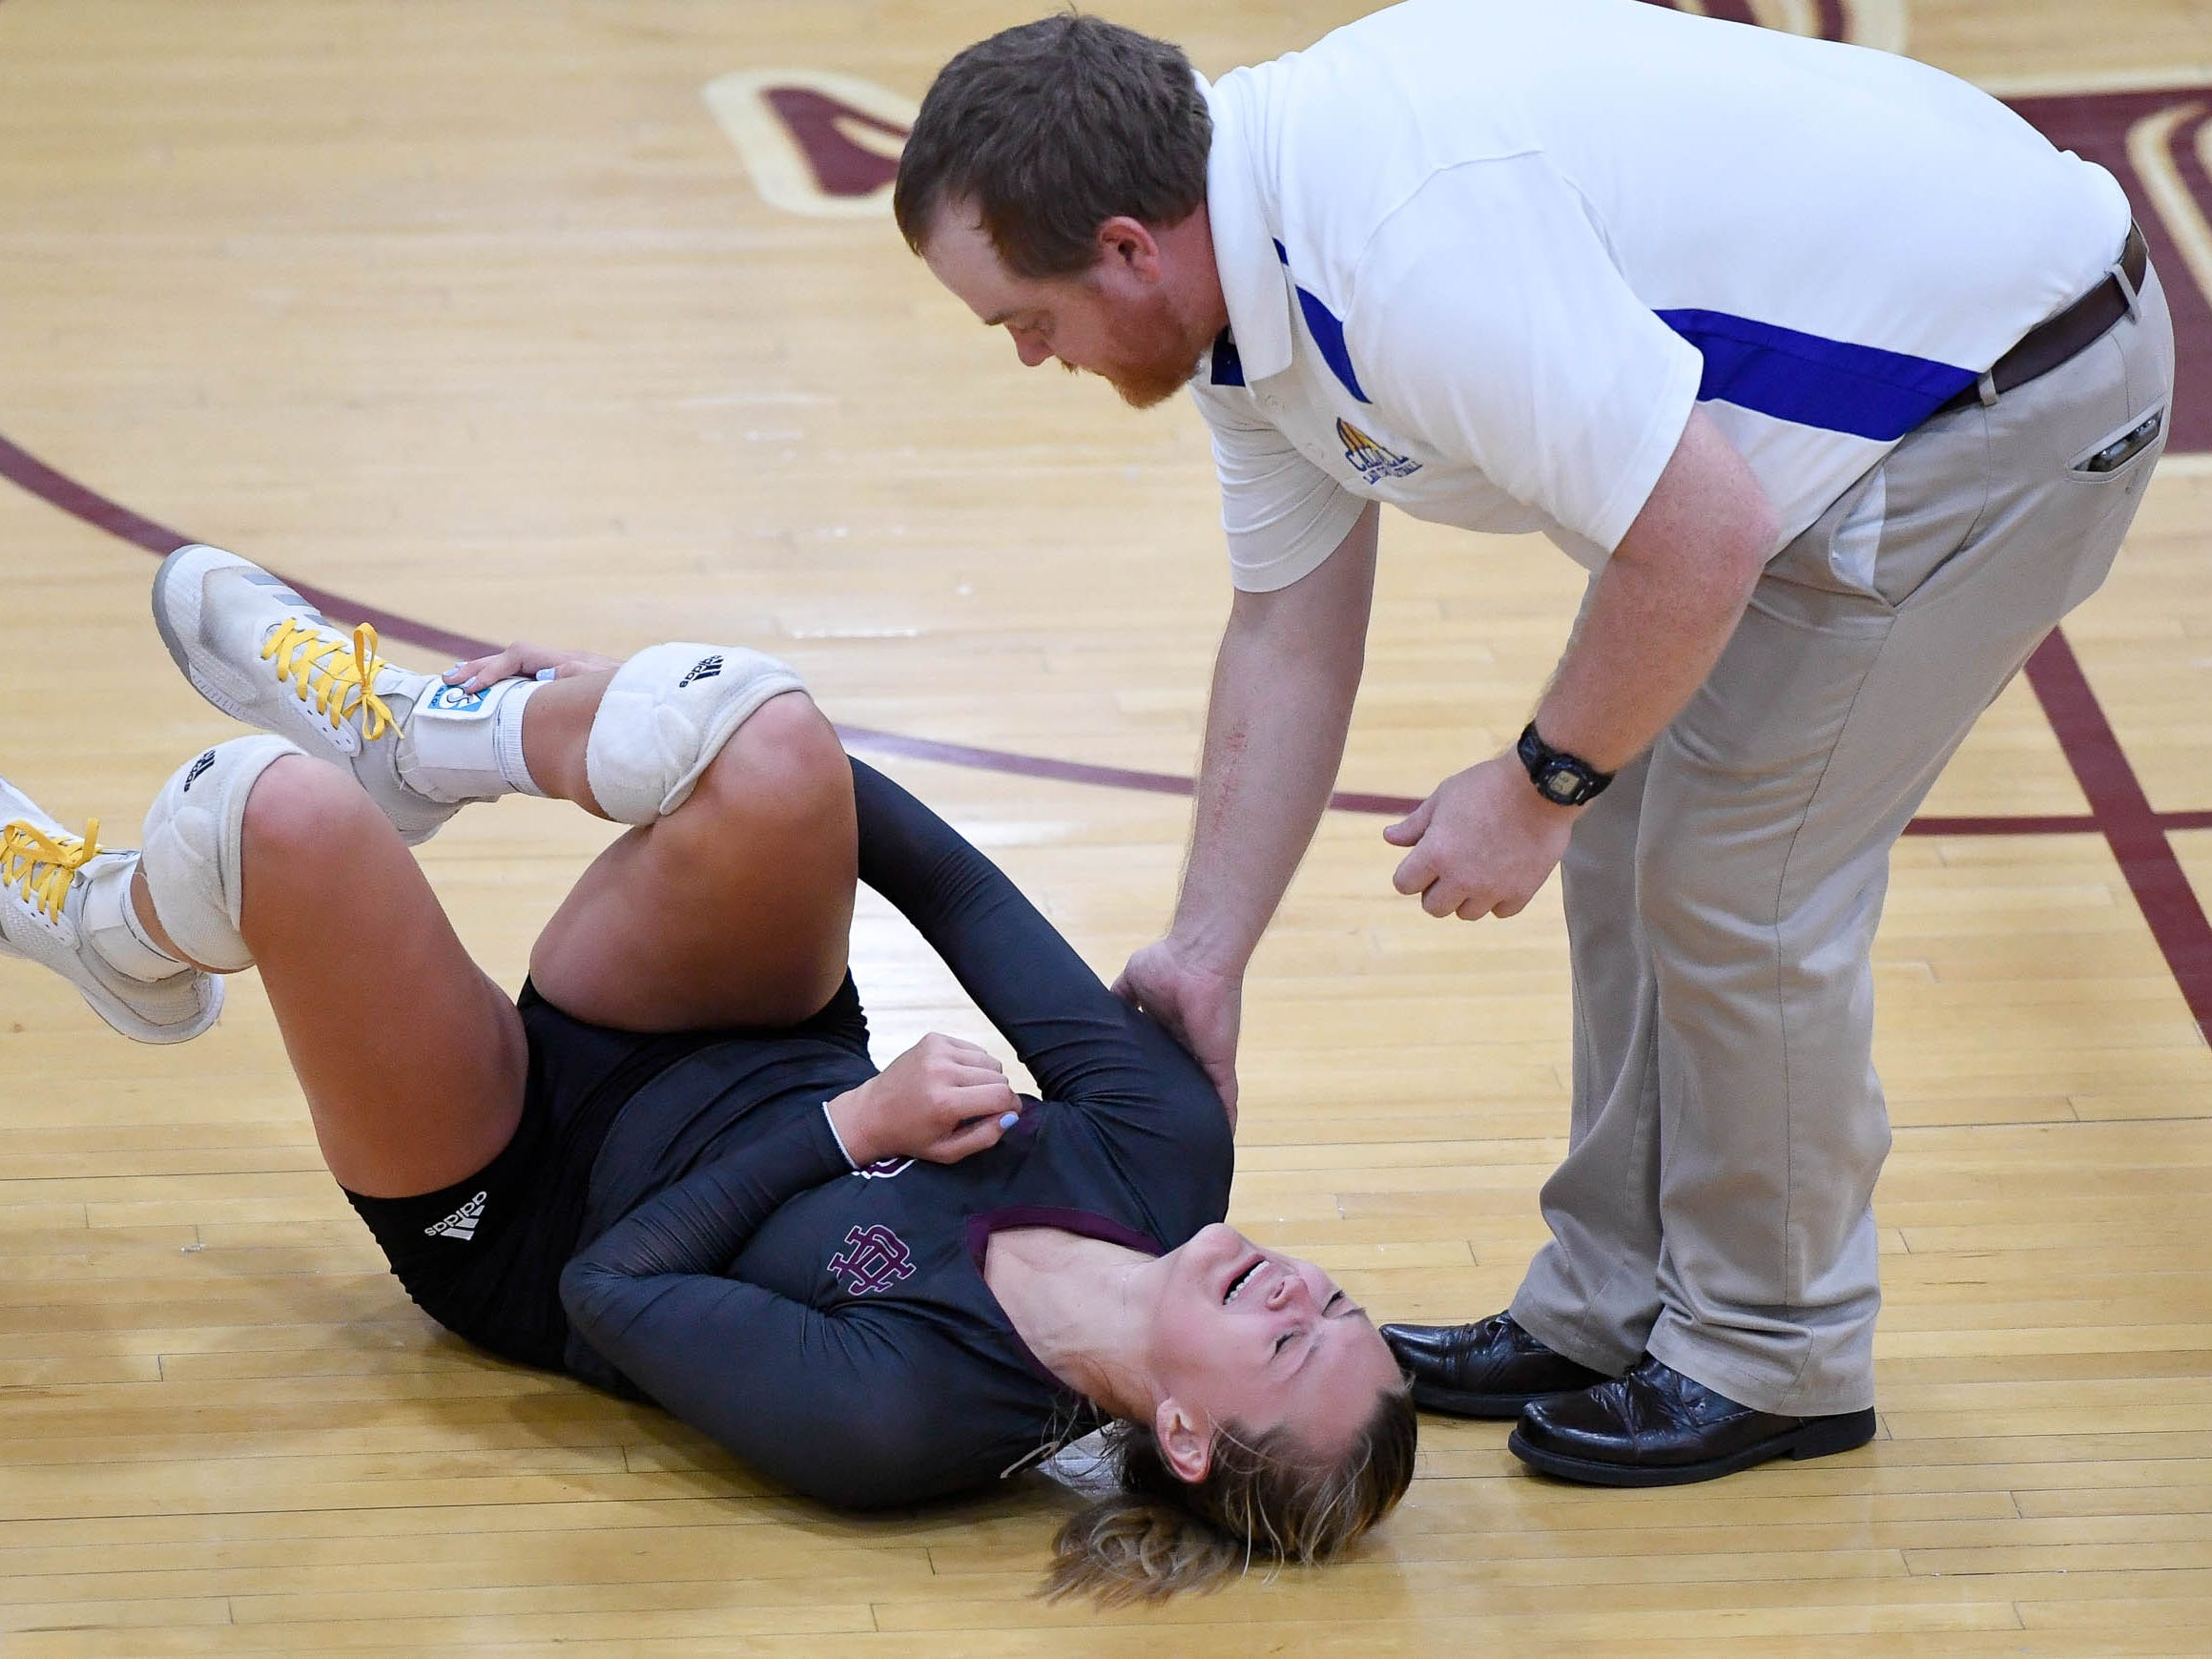 Lady Tiger head coach Daniel Cortner assists Henderson's Hannah Watkins (3) who was injured in the third game as the Henderson County Lady Colonels play the Caldwell County Lady Tigers at Colonel Gym Thursday, October  4, 2018.